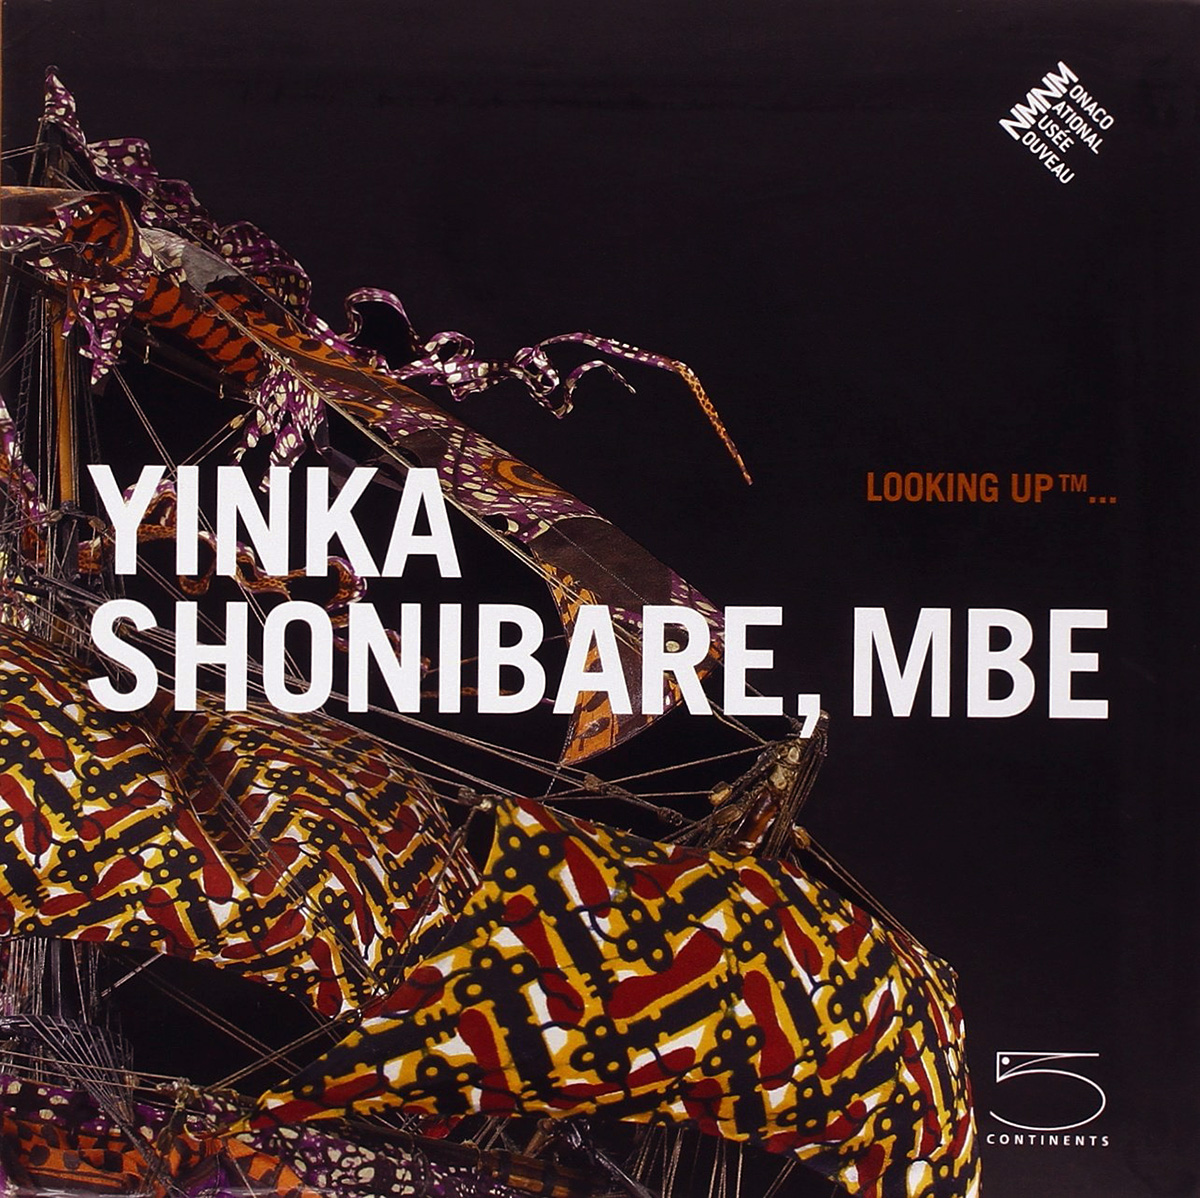 Looking up…Yinka Shonibare, MBE